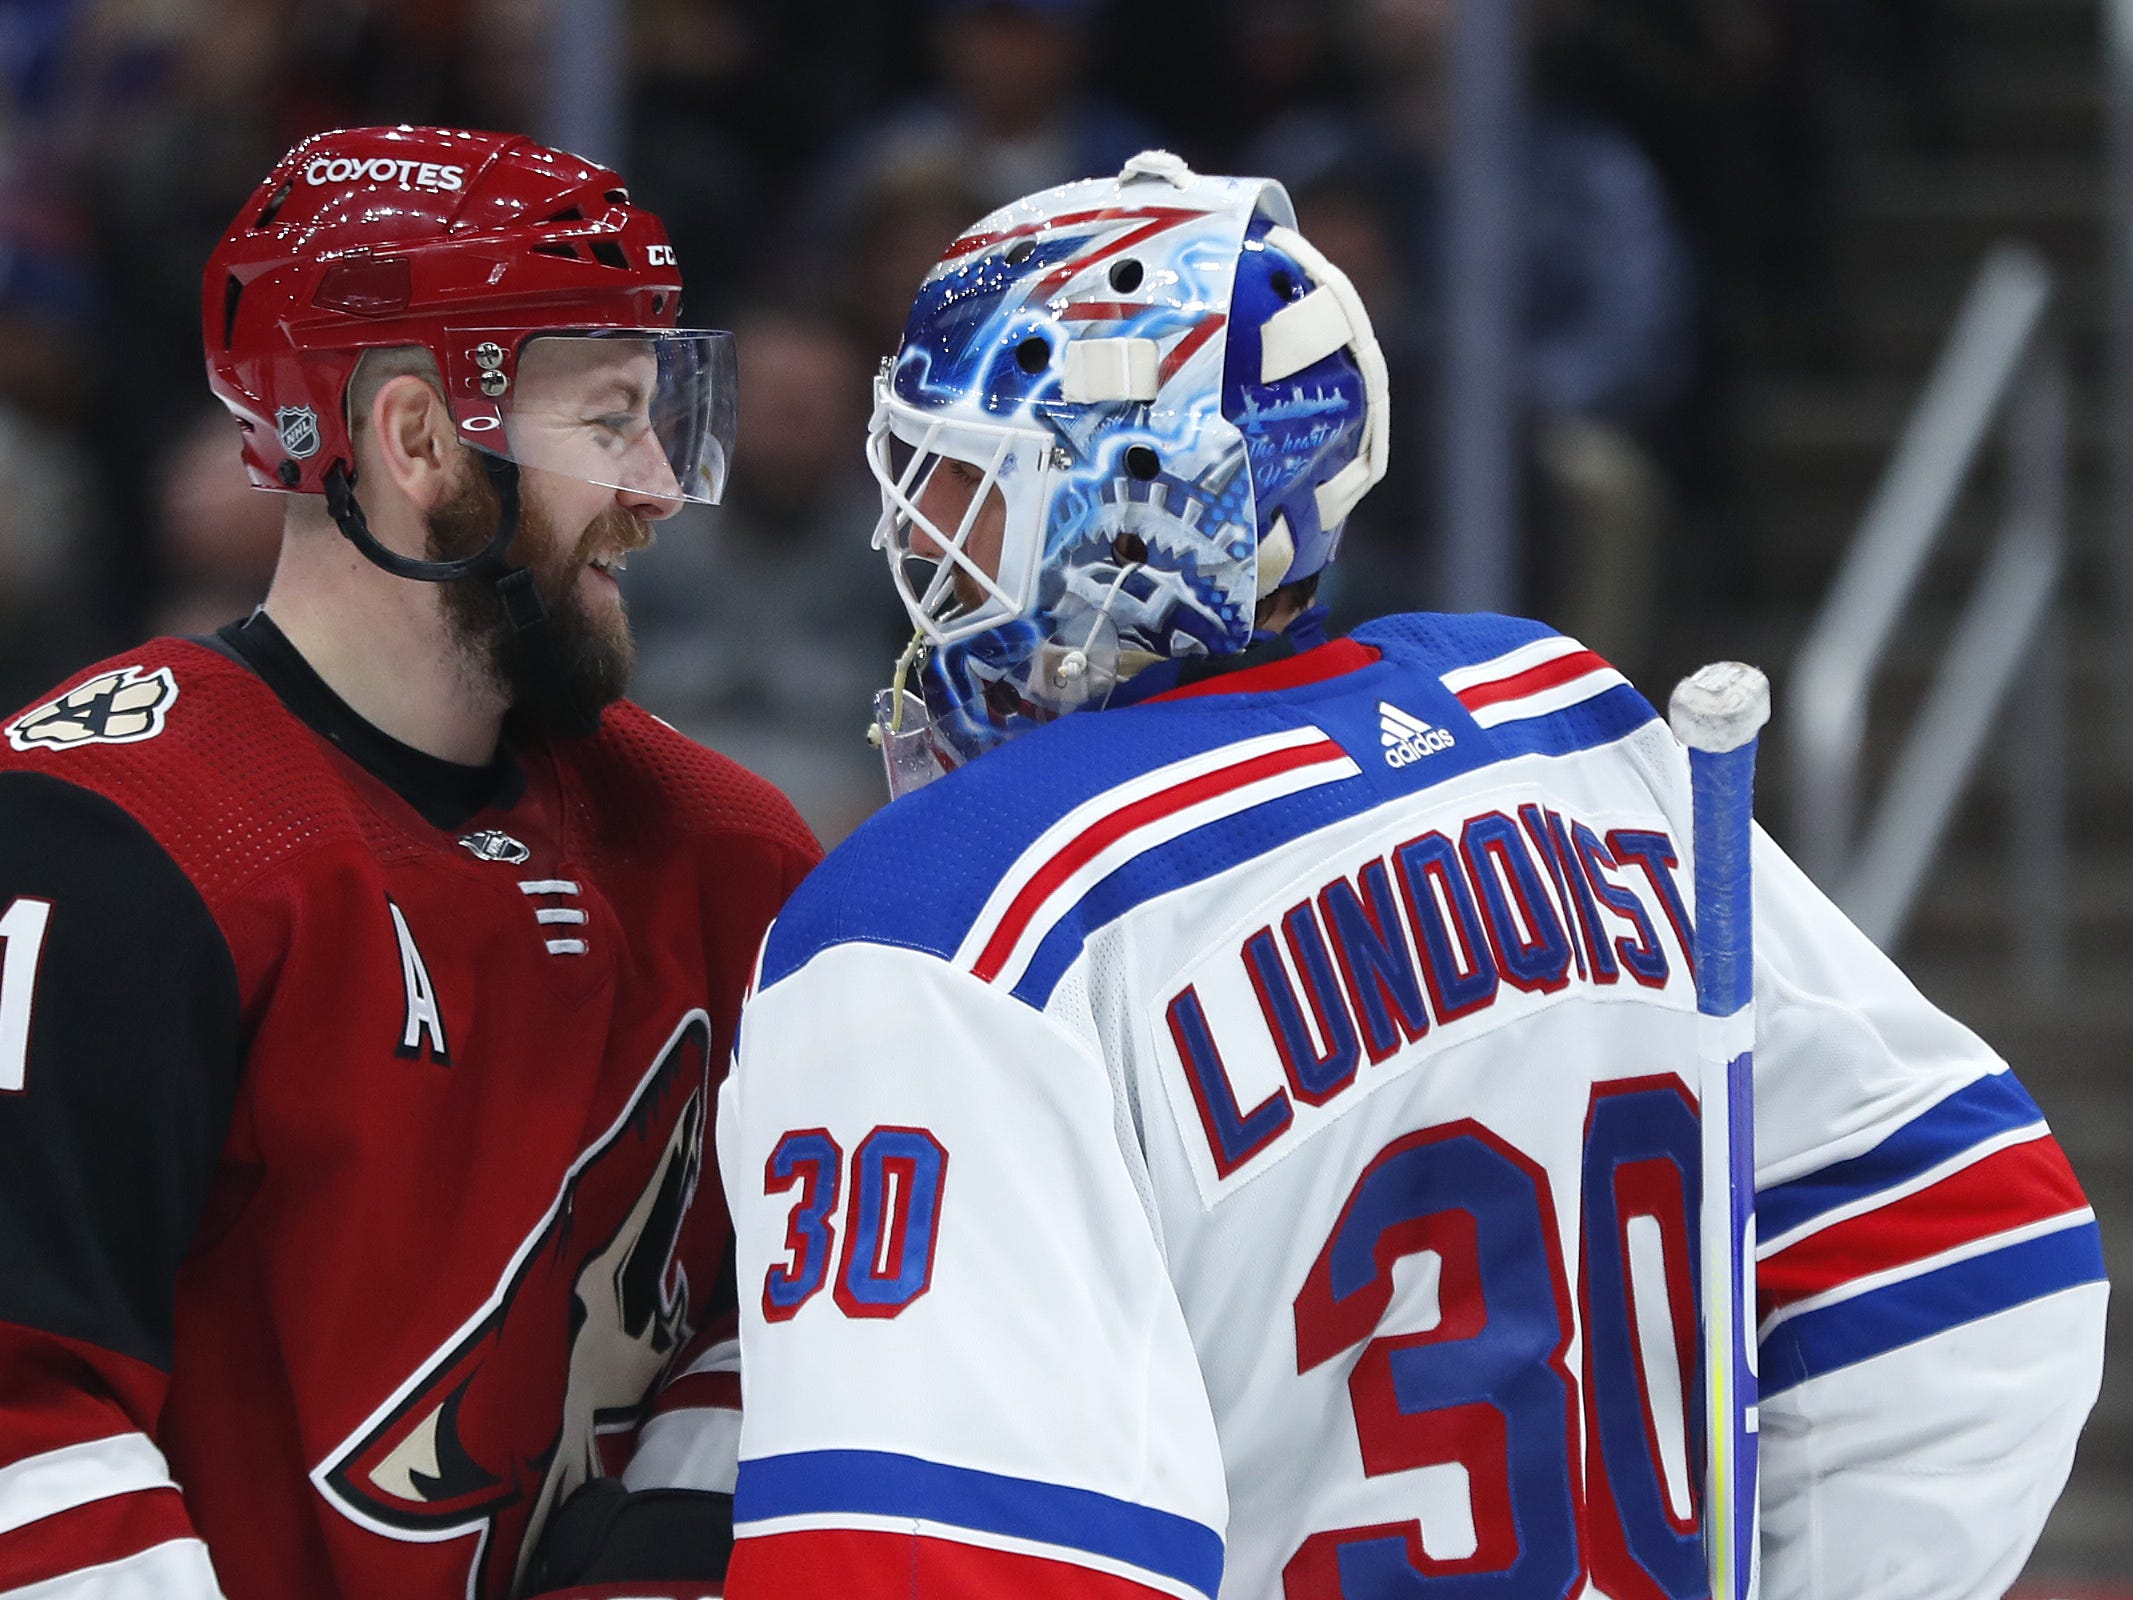 Coyotes' Derek Stepan (21) talks with Rangers' goalie Henrik Lundqvist (30) during the second period at Gila River Arena in Glendale, Ariz. on January 6, 2019.